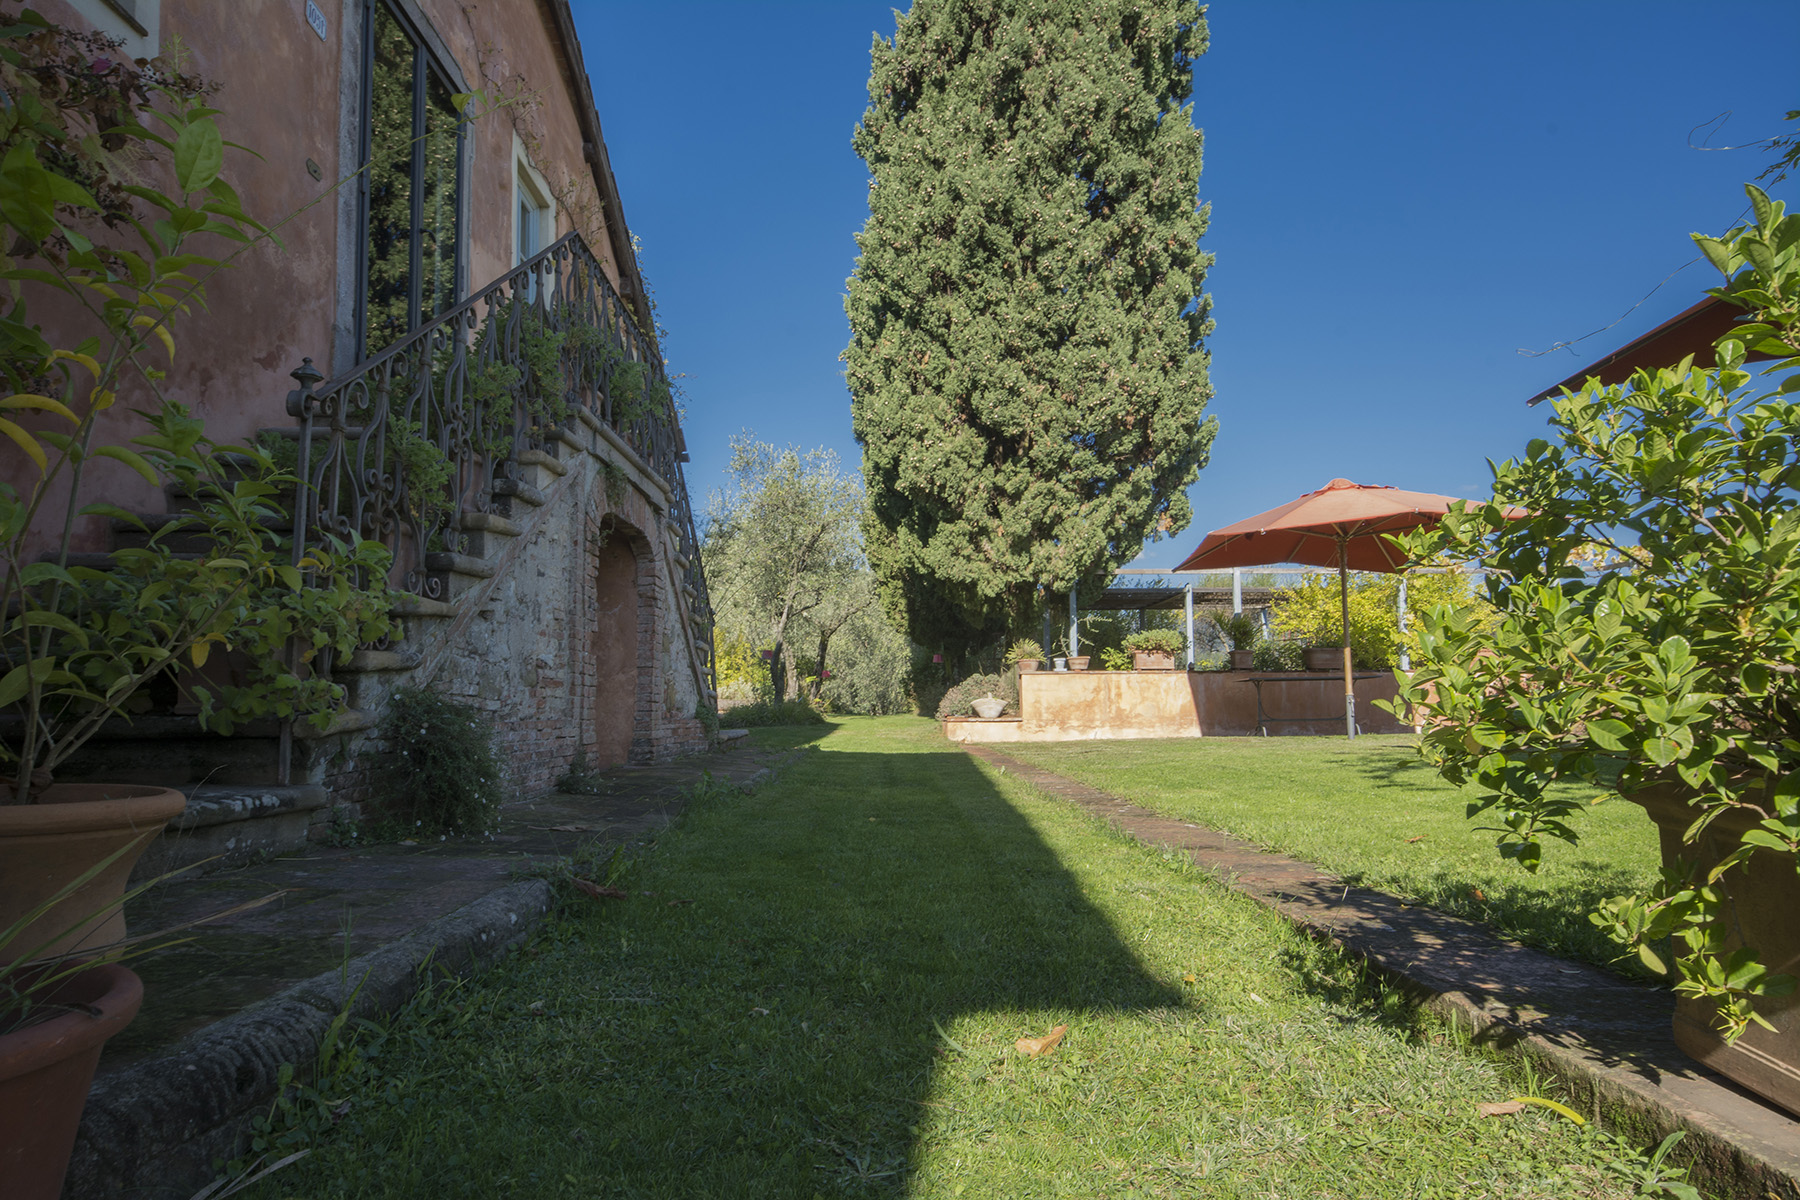 Additional photo for property listing at Stunning farm house with a unique garden in Lucca's countryside Via di Mutigliano Lucca, Lucca 55100 Italien